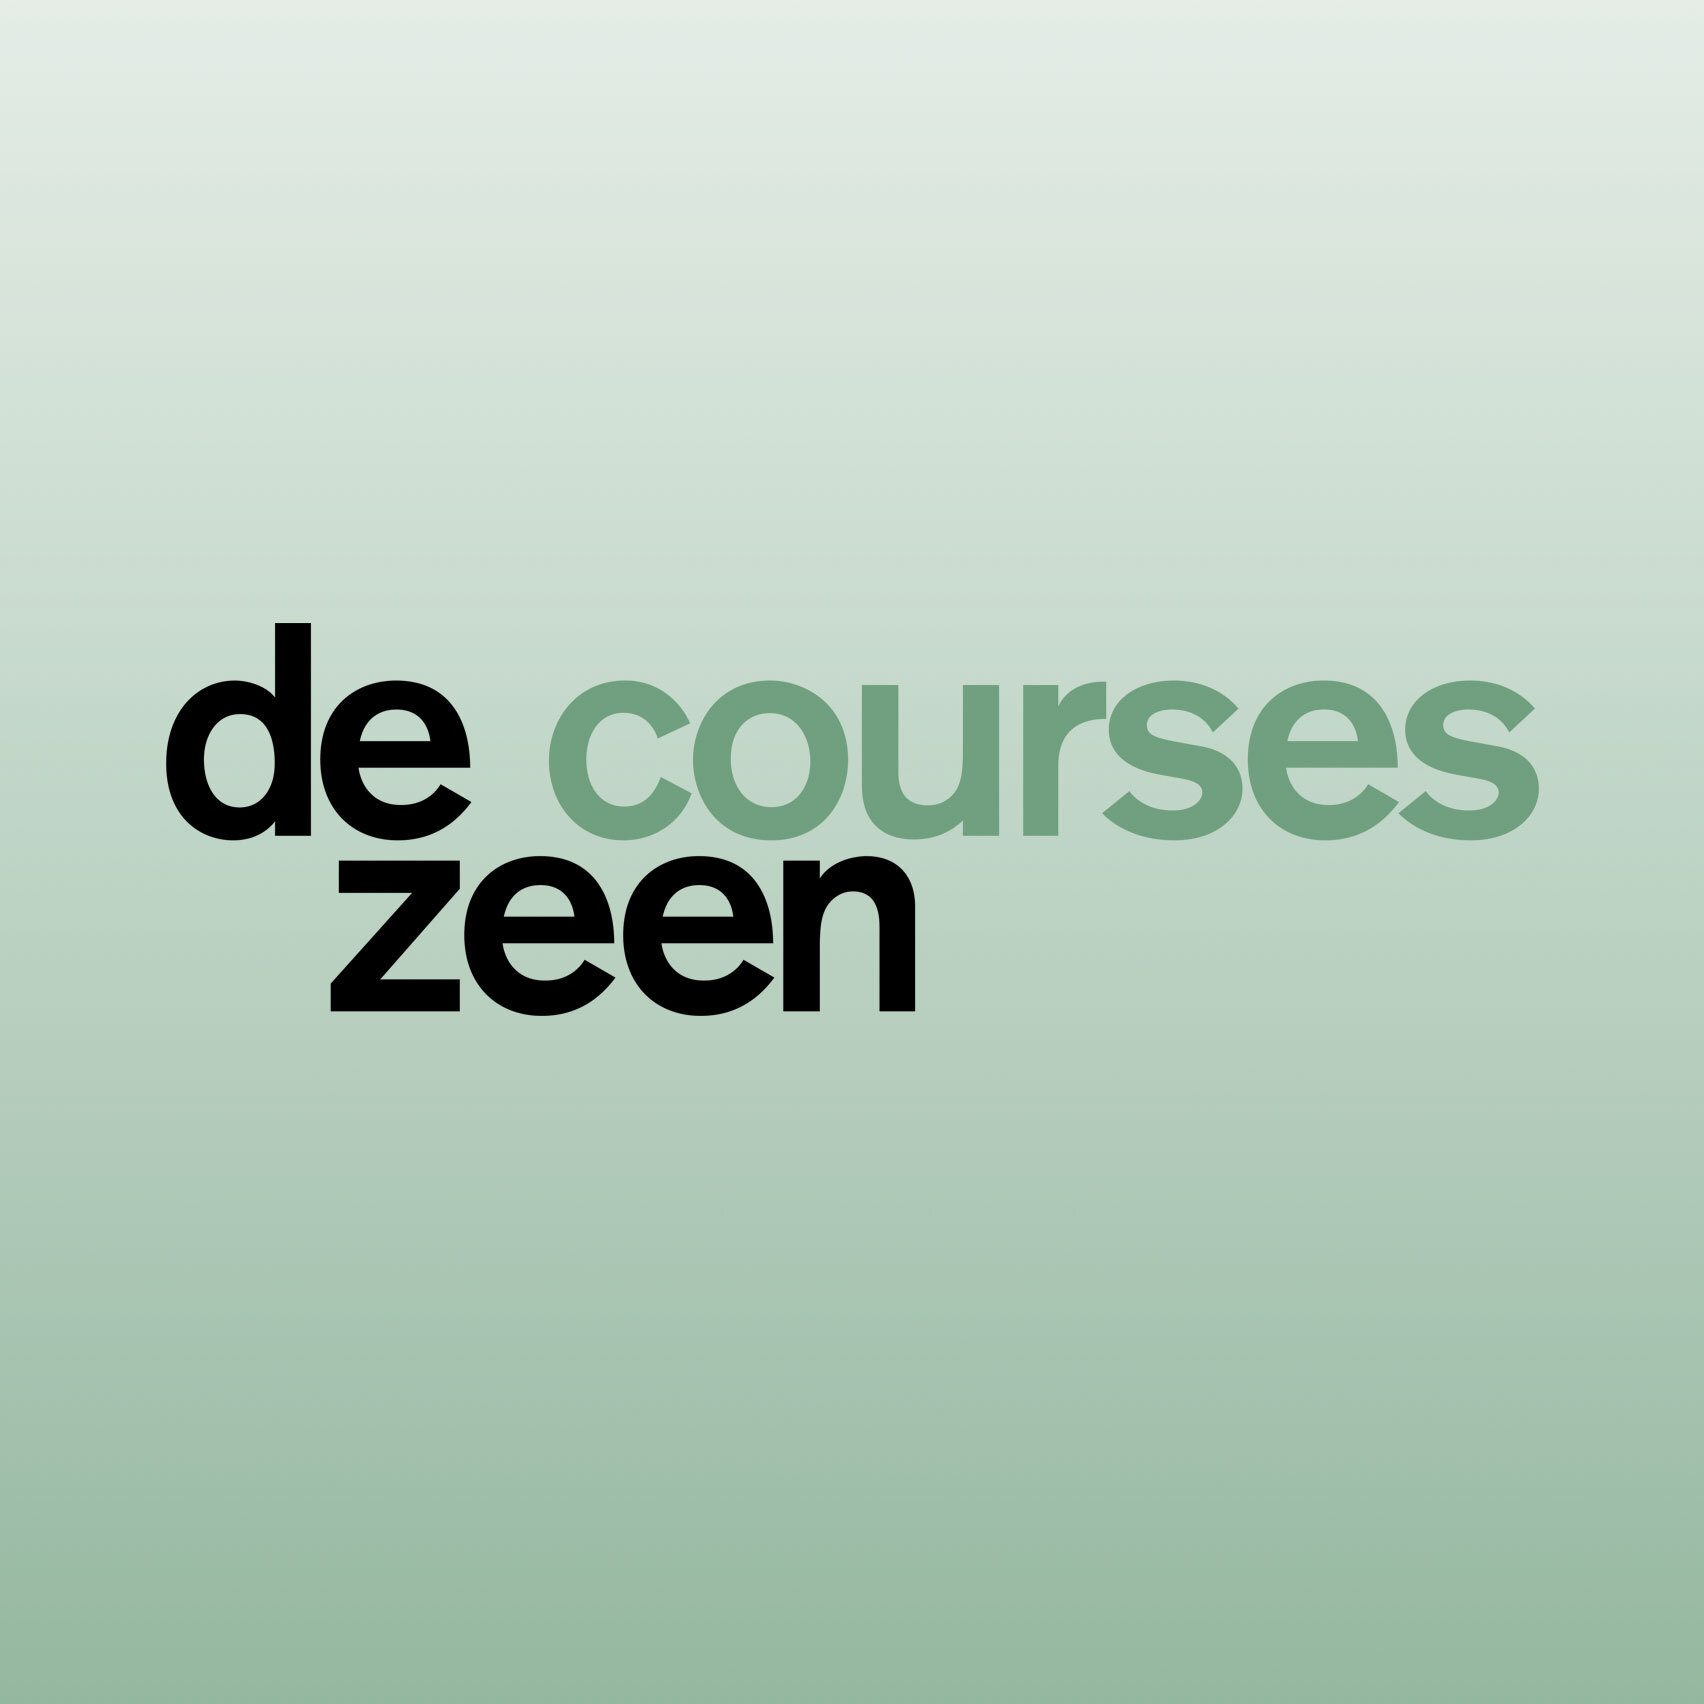 Dezeen Courses launches with details of over 50 architecture and design courses